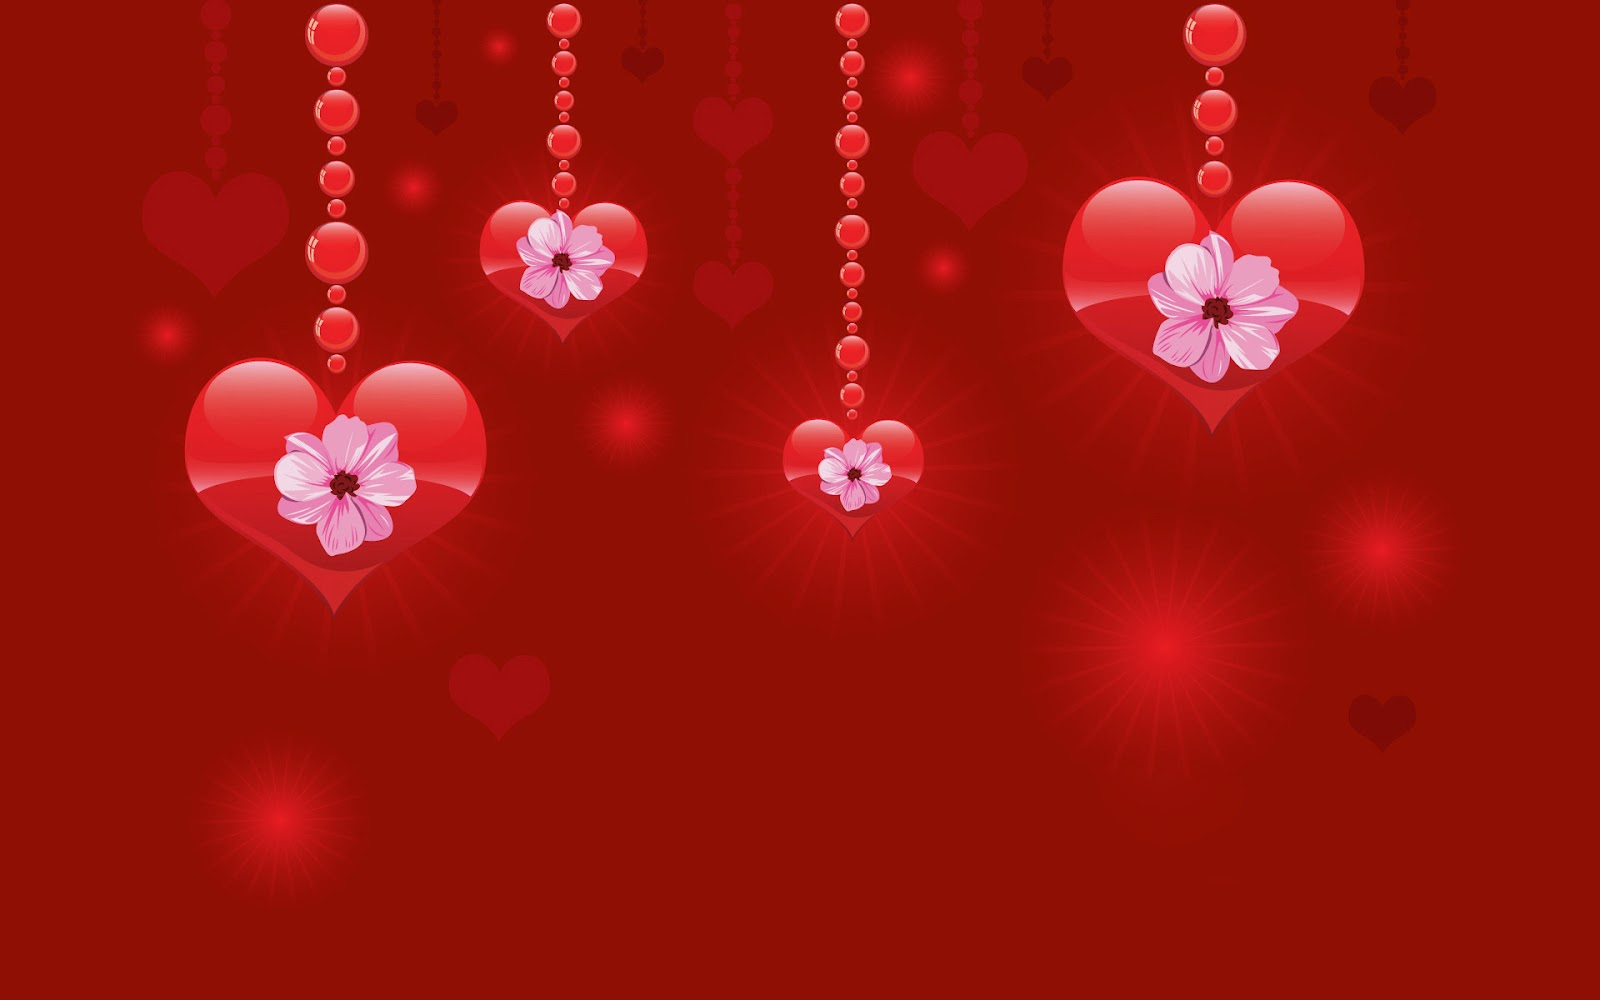 Valentine Day Wallpapers And Screensavers   valentine day screensavers 1600x1000